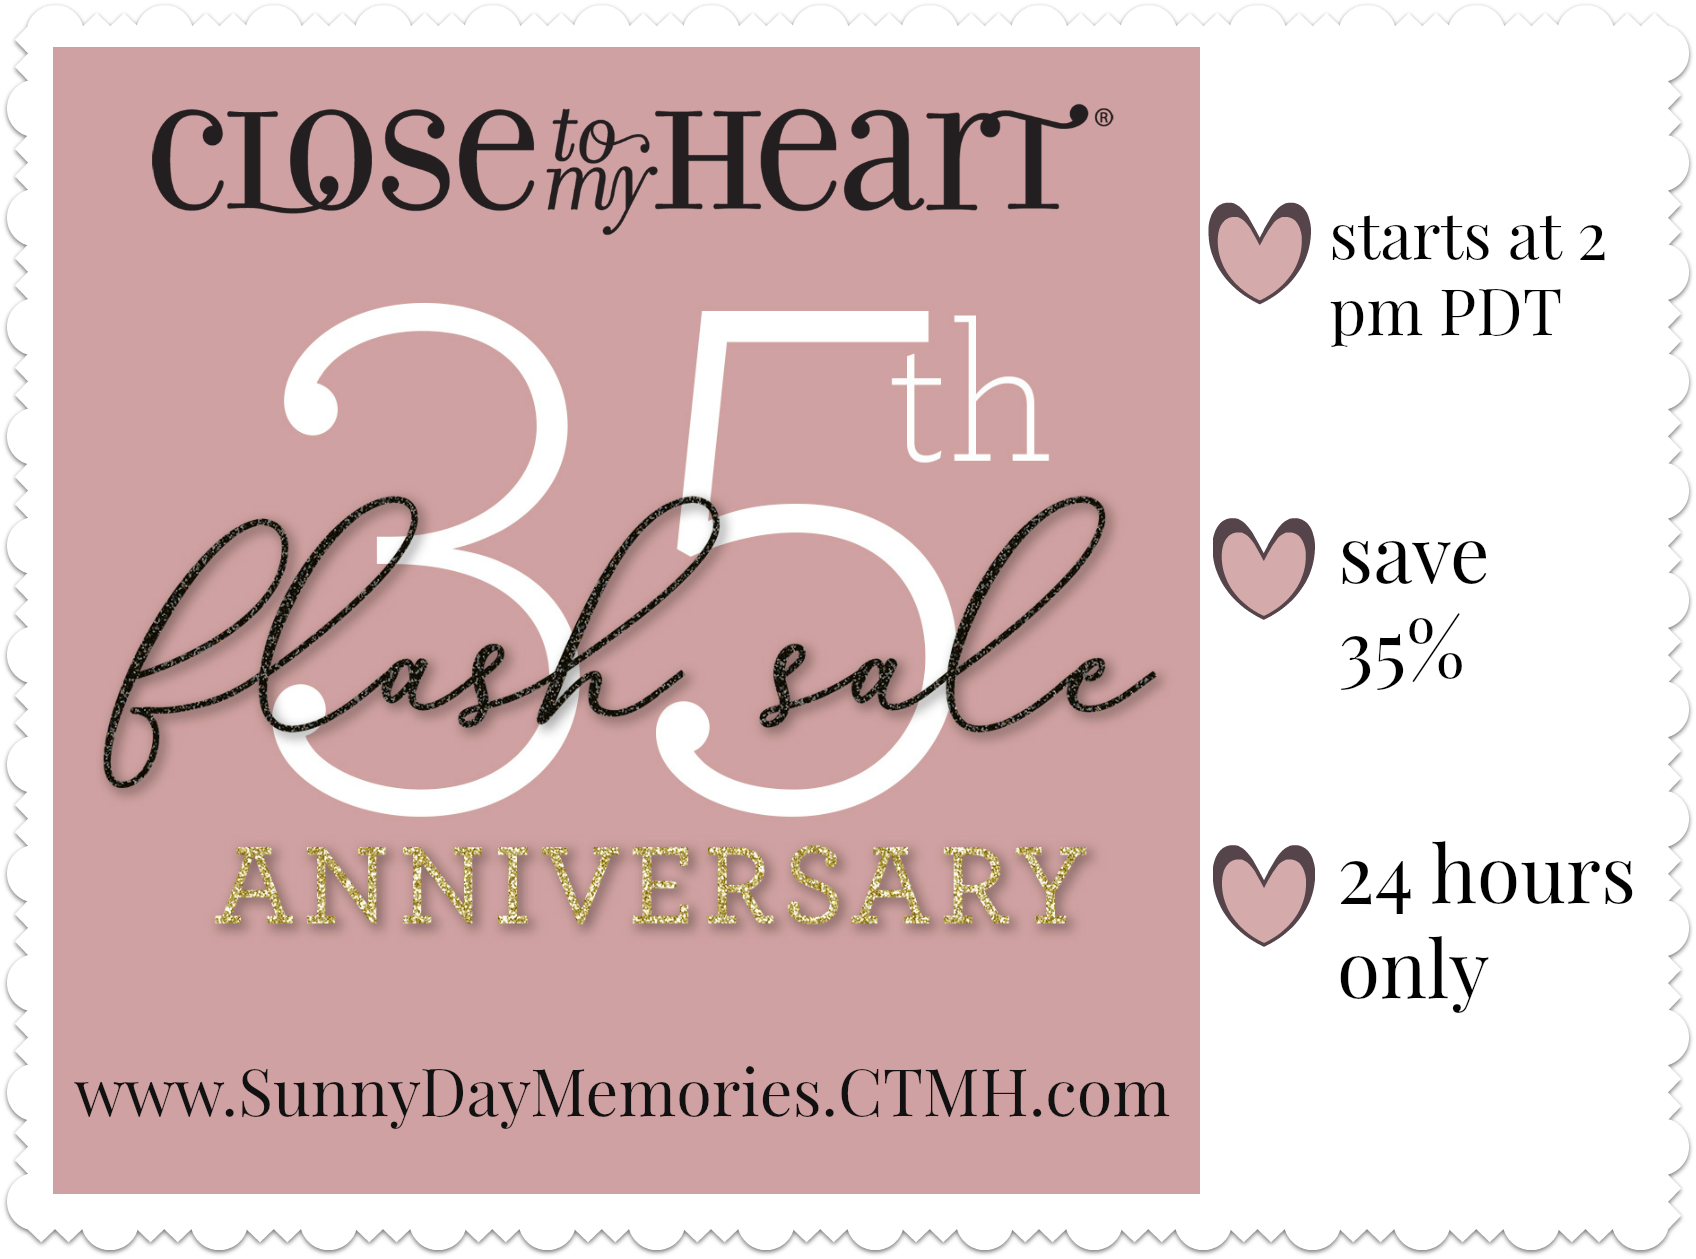 June 2019 CTMH Flash Sale